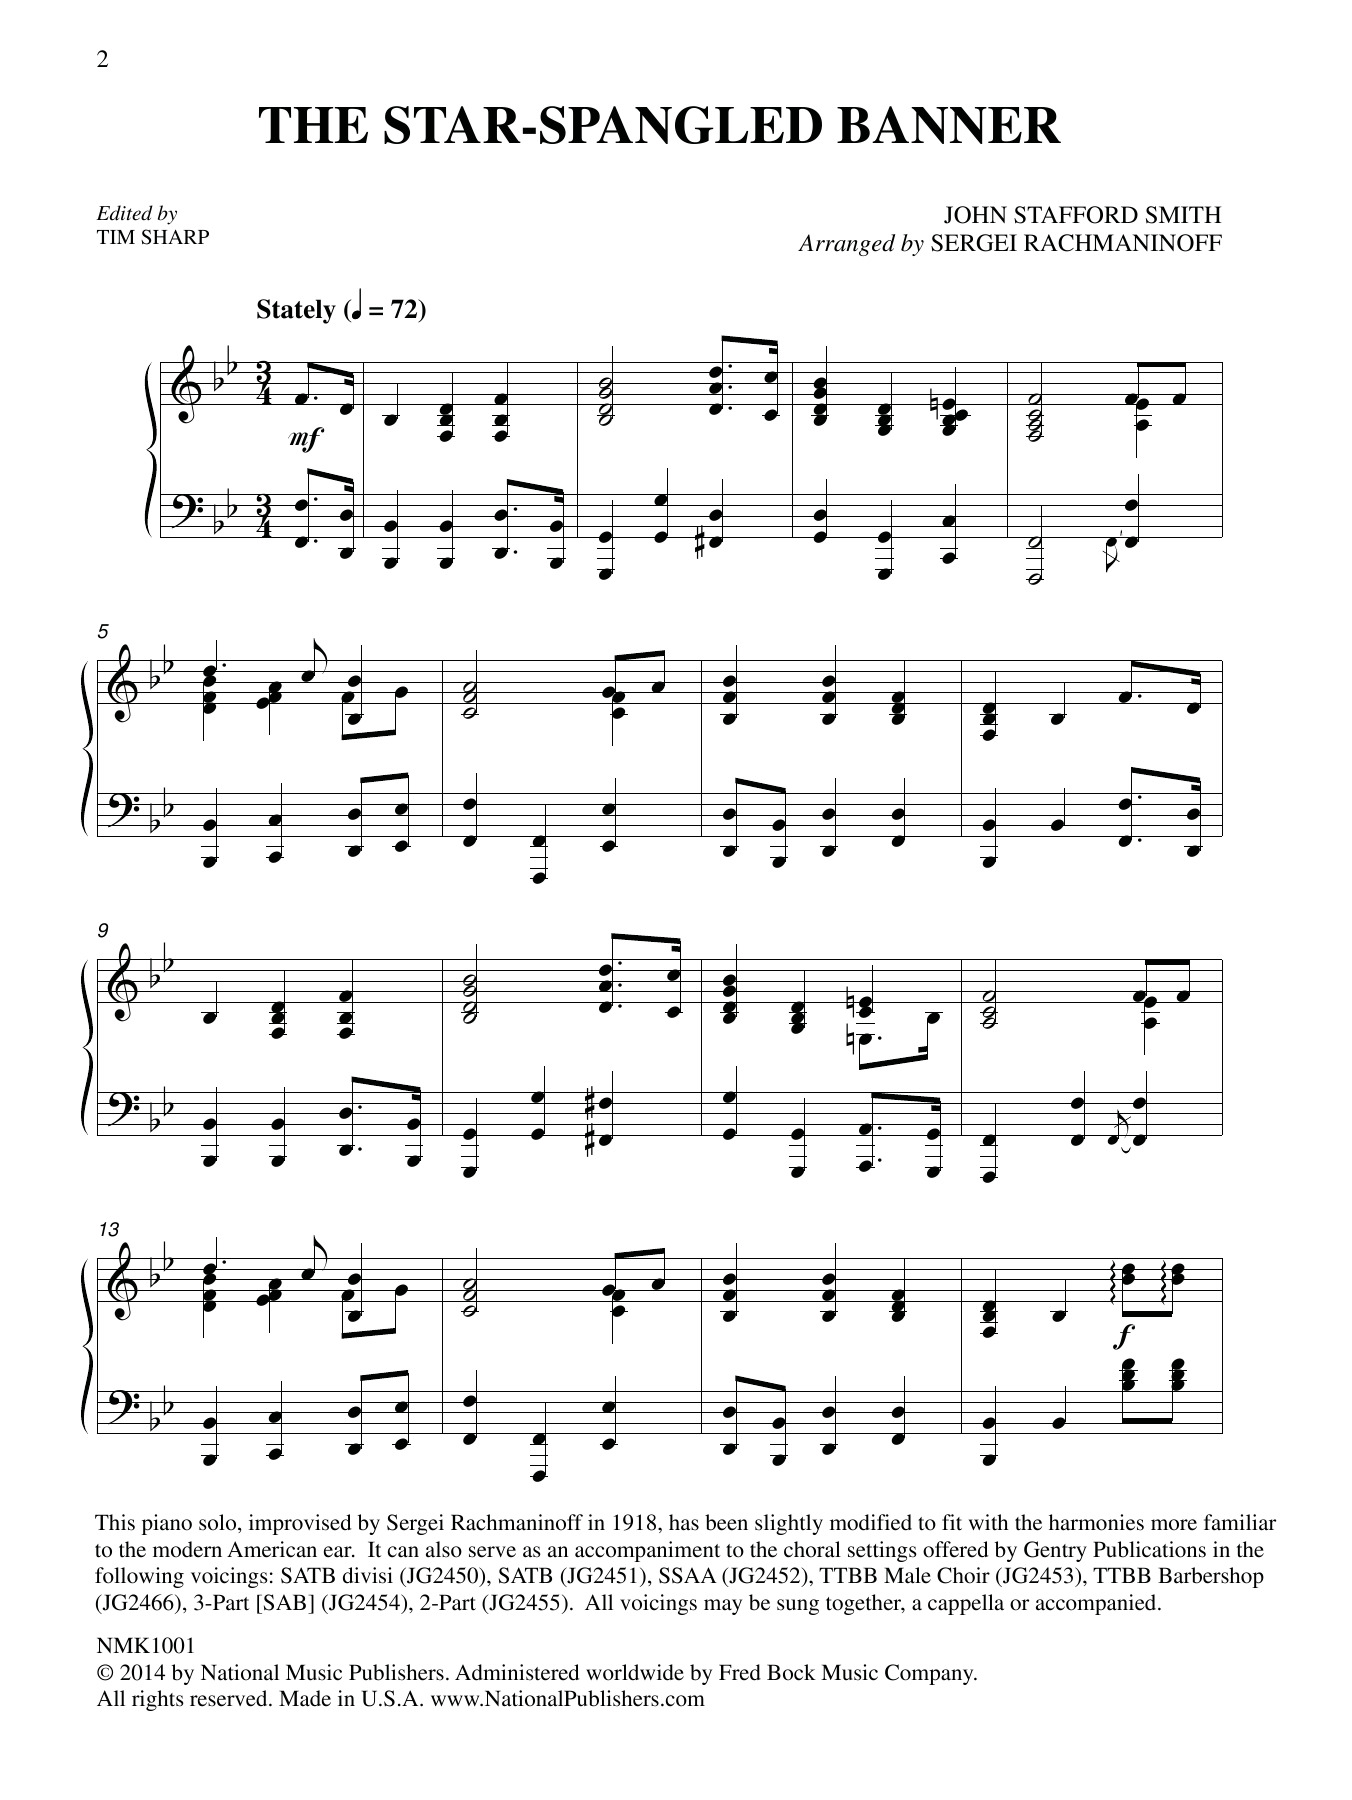 The Star Spangled Banner Arr Sergei Rachmaninoff Ed Tim Sharp Sheet Music Francis Scott Key And John Stafford Smith Piano Solo